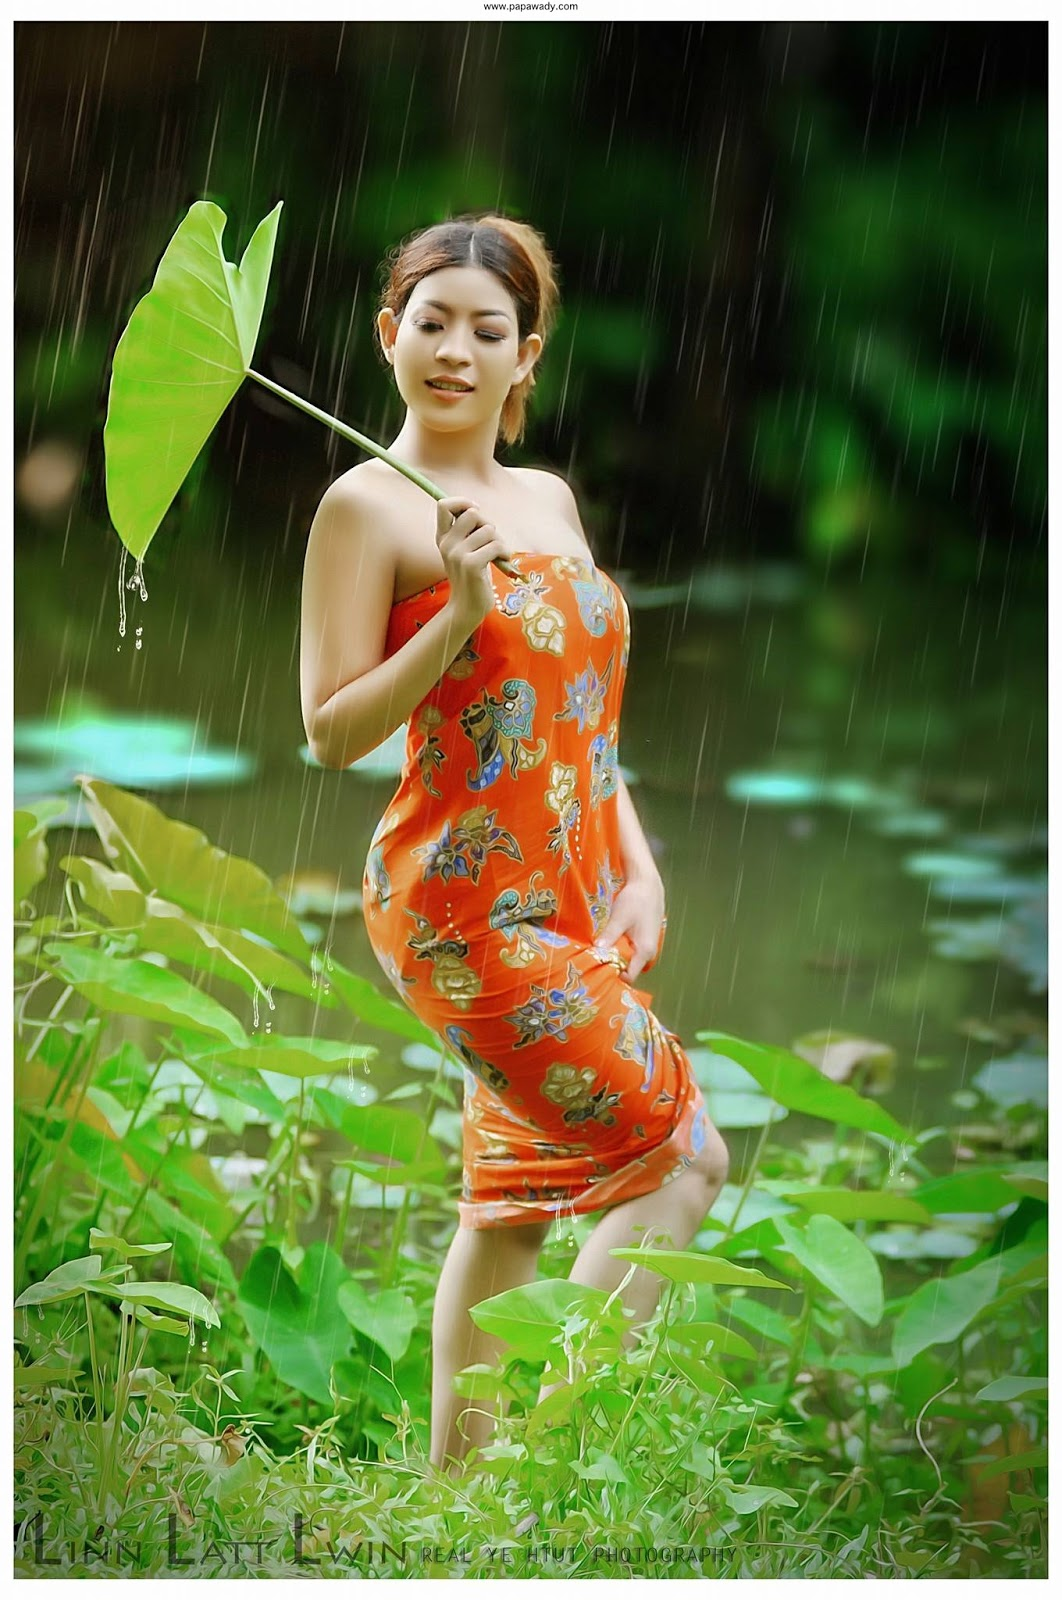 Lin Latt Lwin Outdoor Photoshoot Album 2